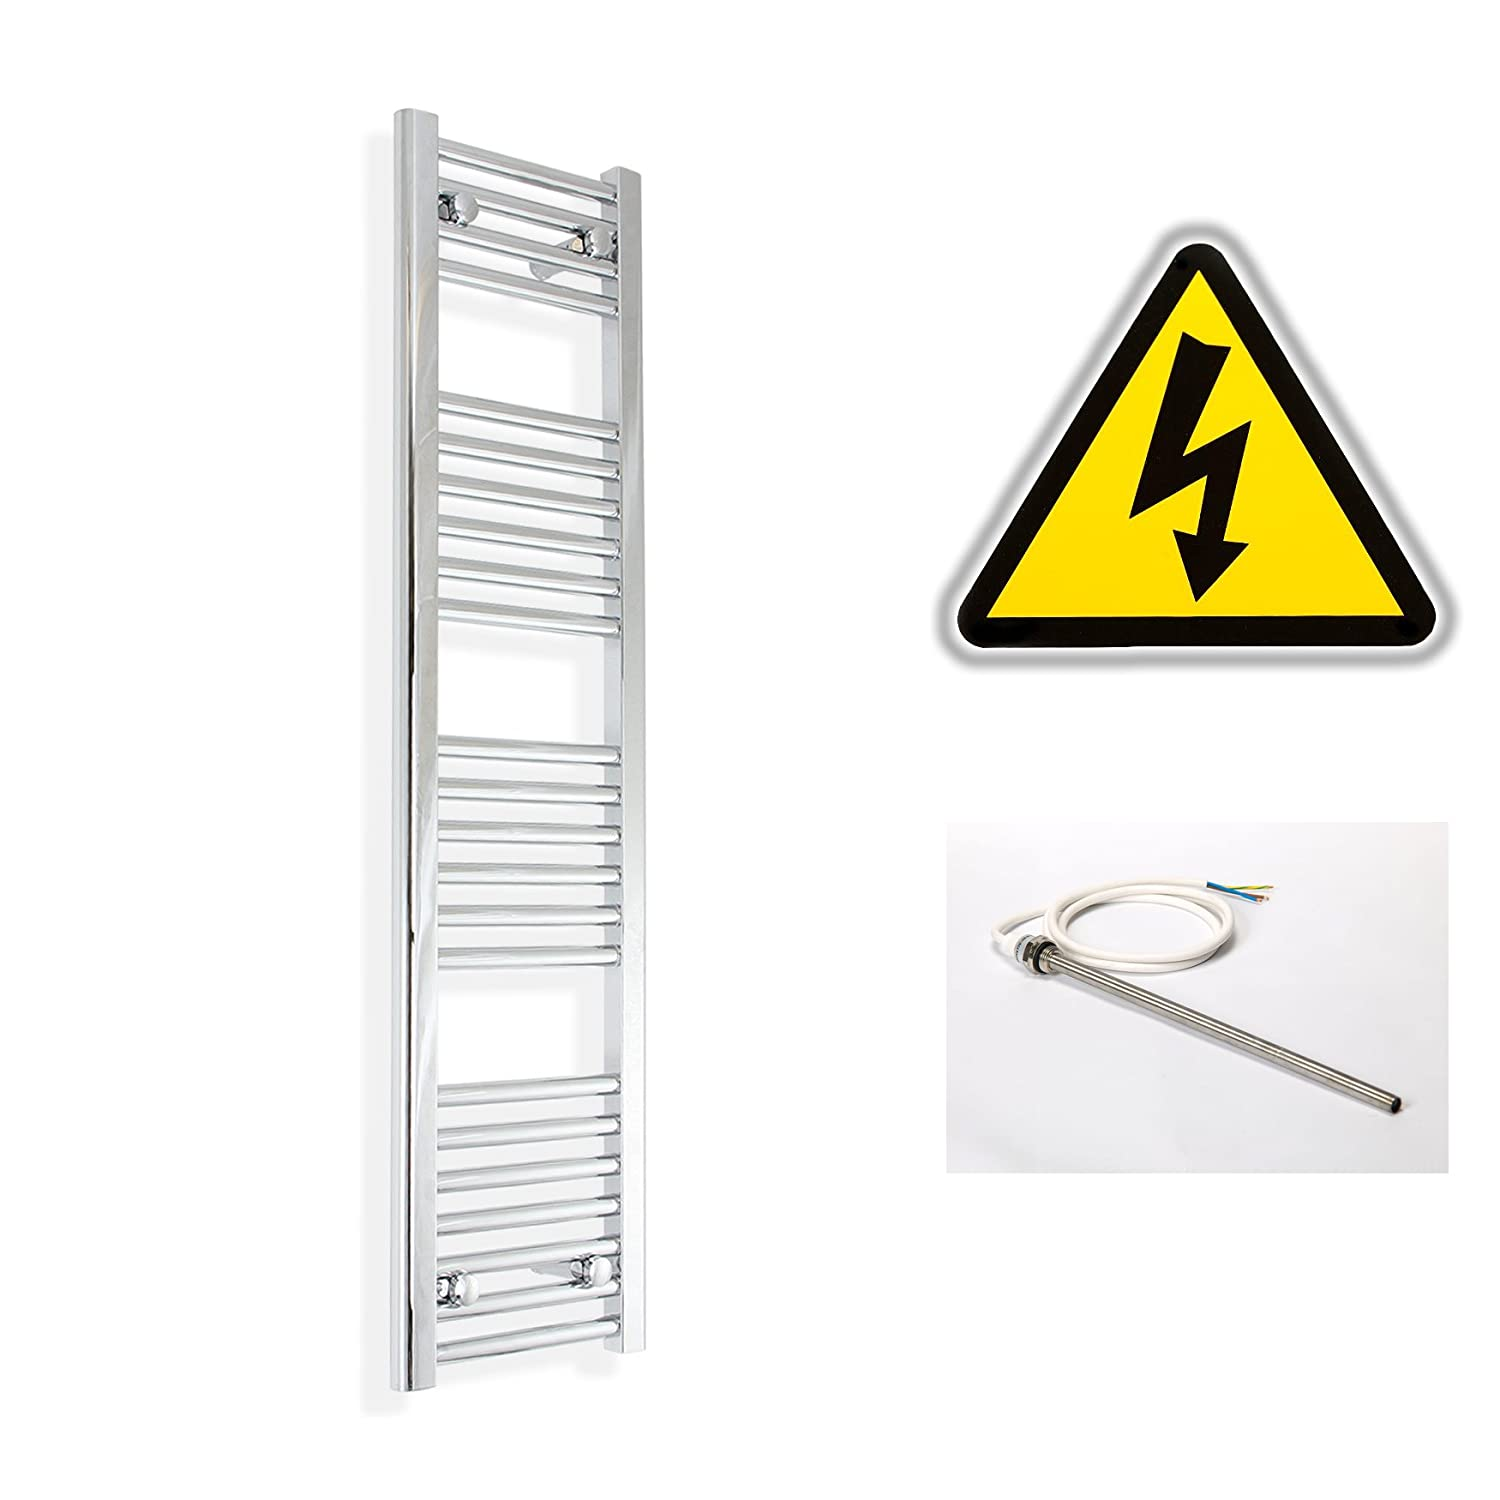 300mm wide x 1200mm high Prefilled Electric Heated Towel Rail Radiator Flat Chrome Bathroom Warmer